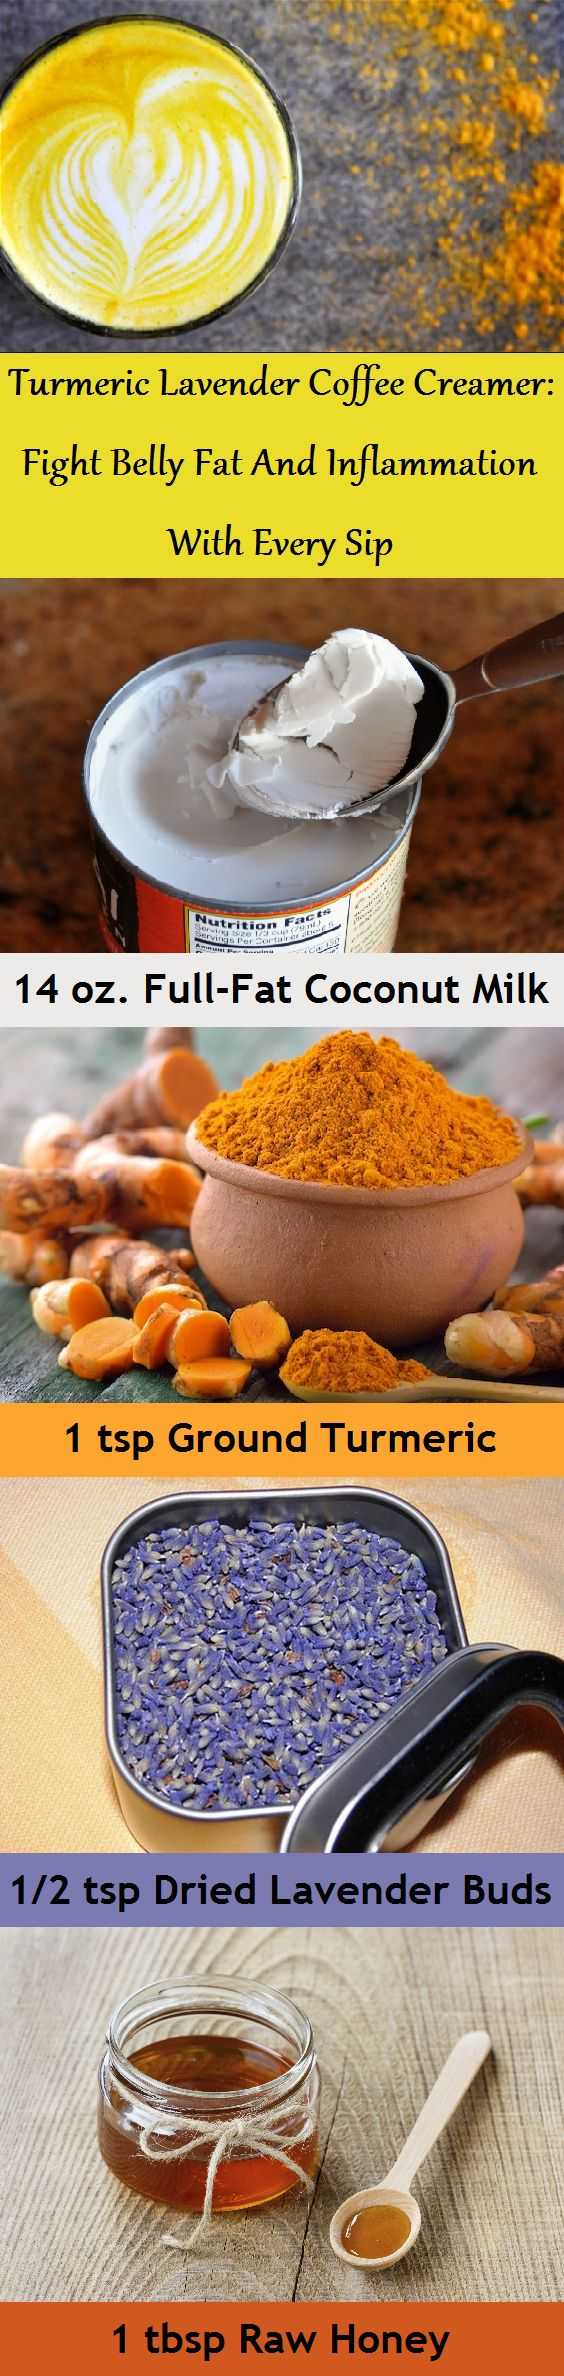 A combination of ground turmeric, coconut milk and lavender can be a soothing coffee creamer that is delicious both hot and cold.